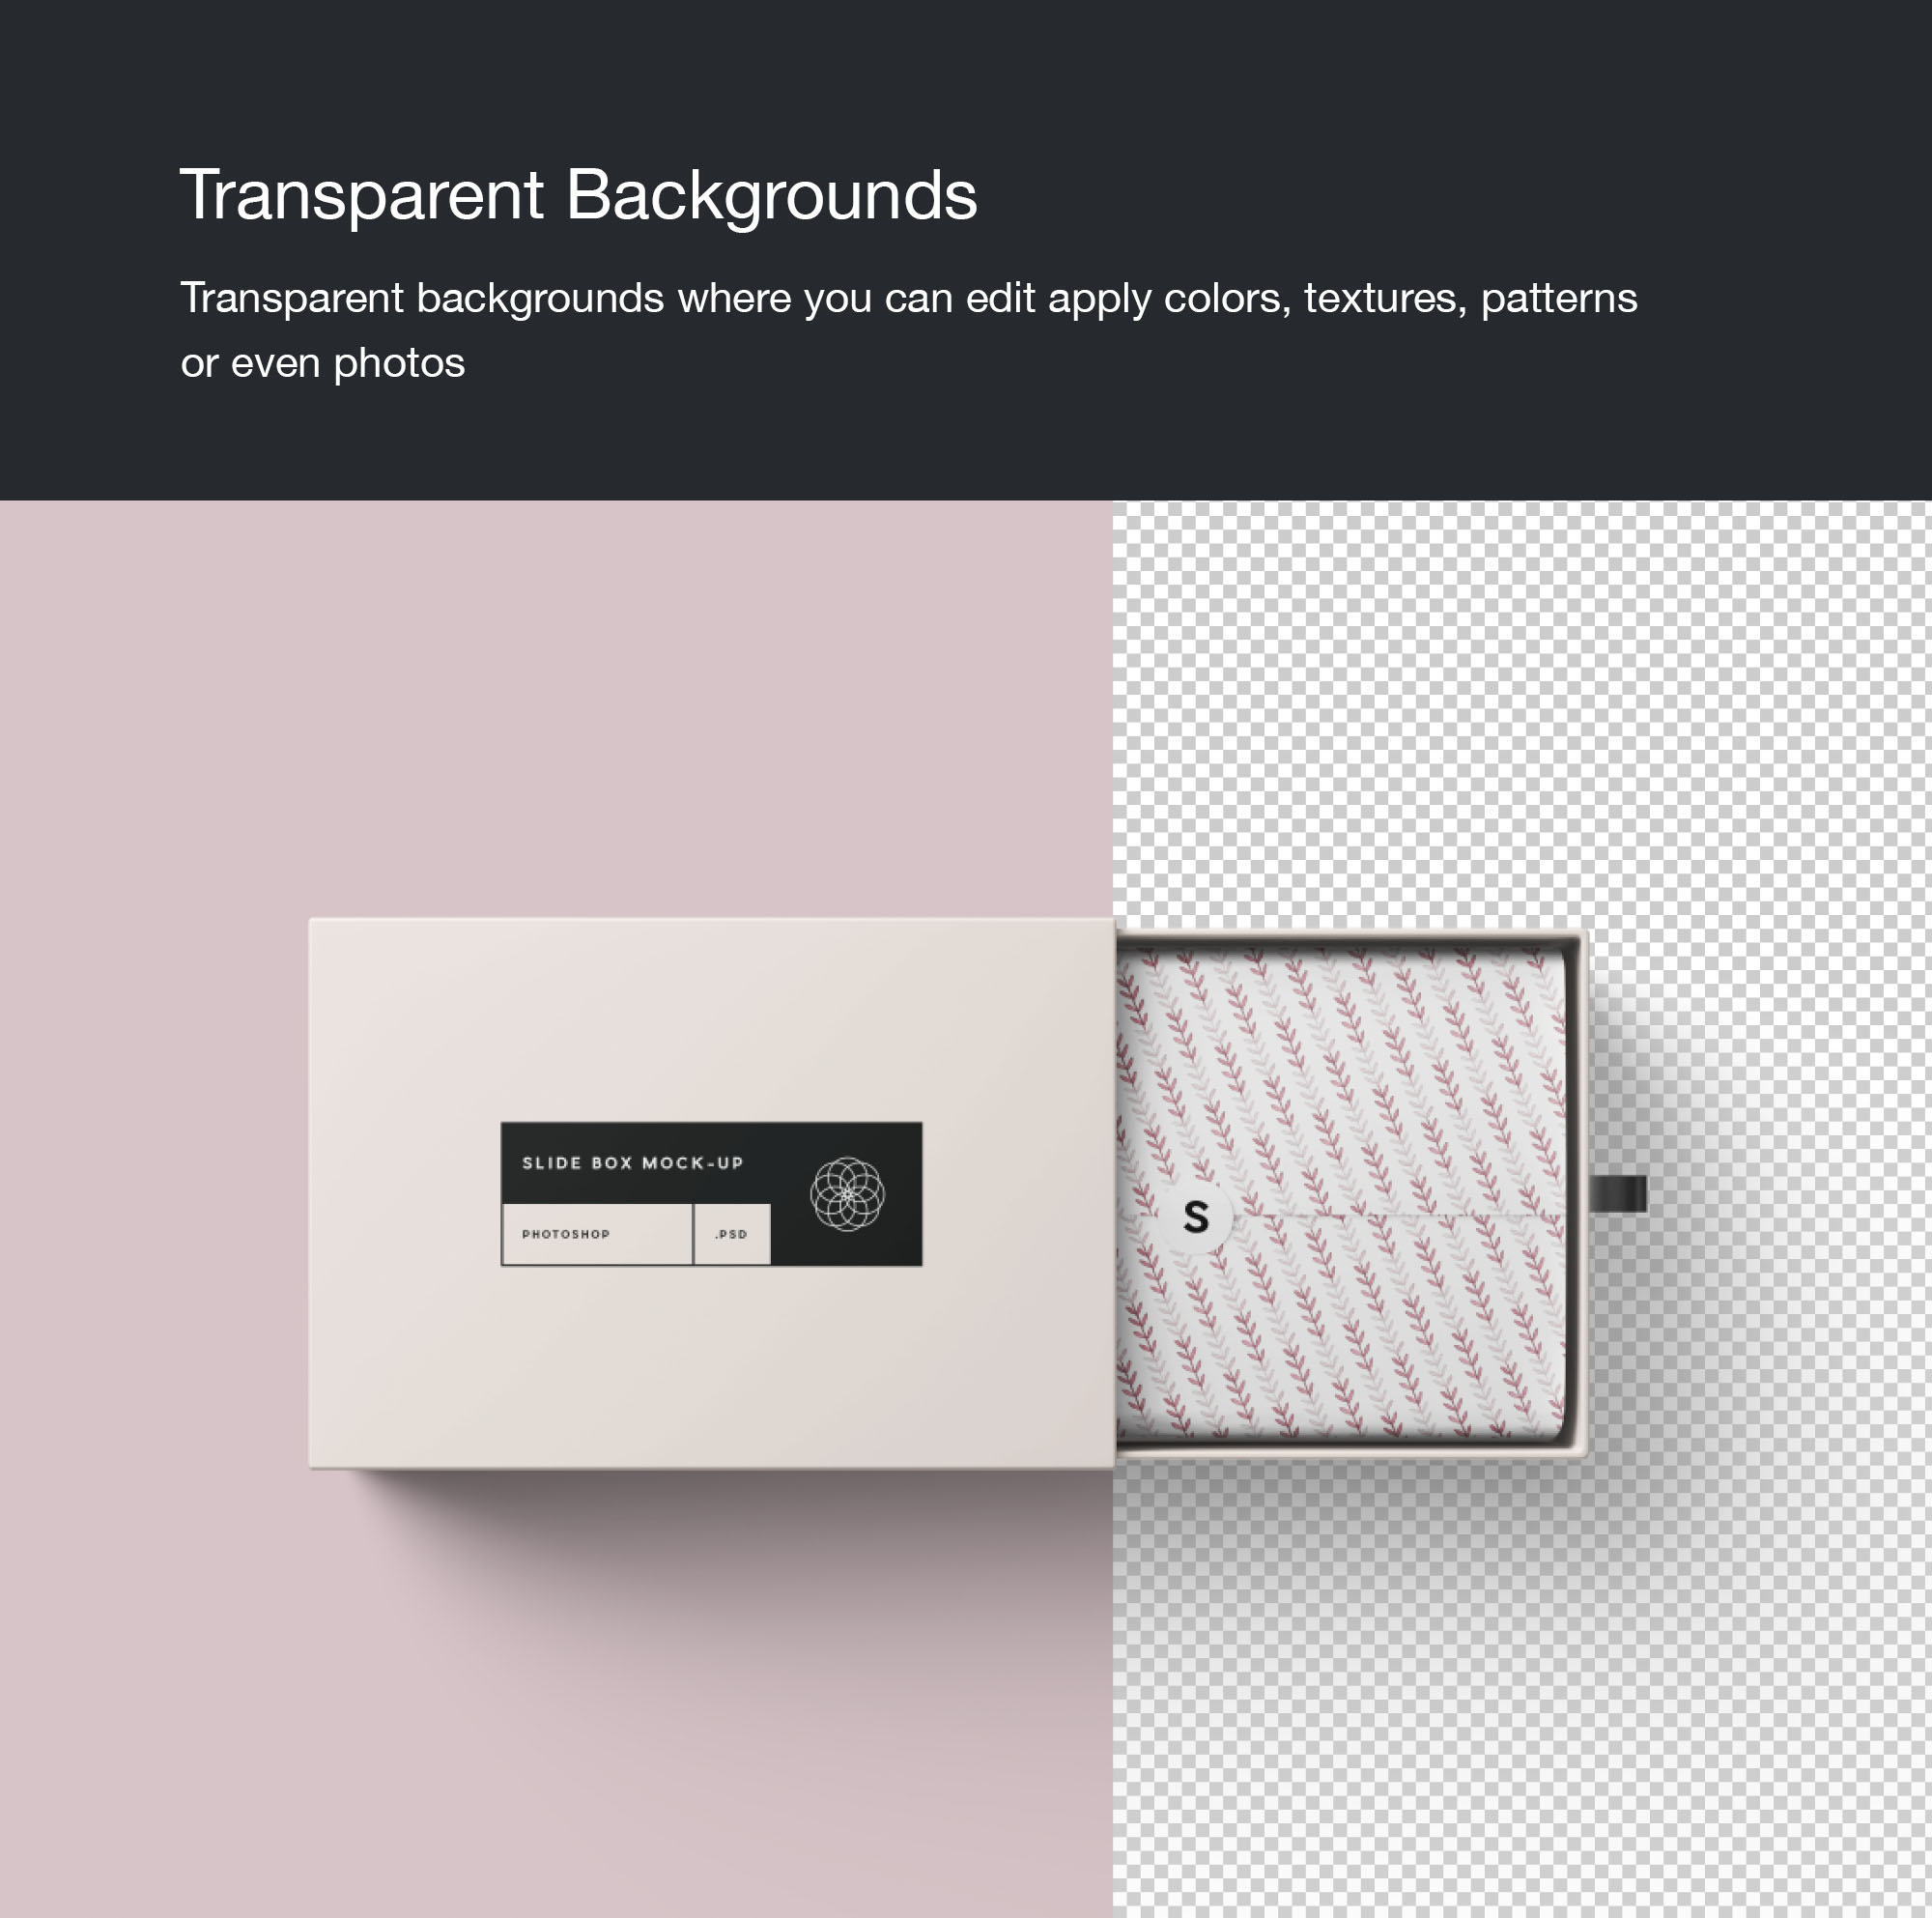 Rectangle Slide Box Mockup